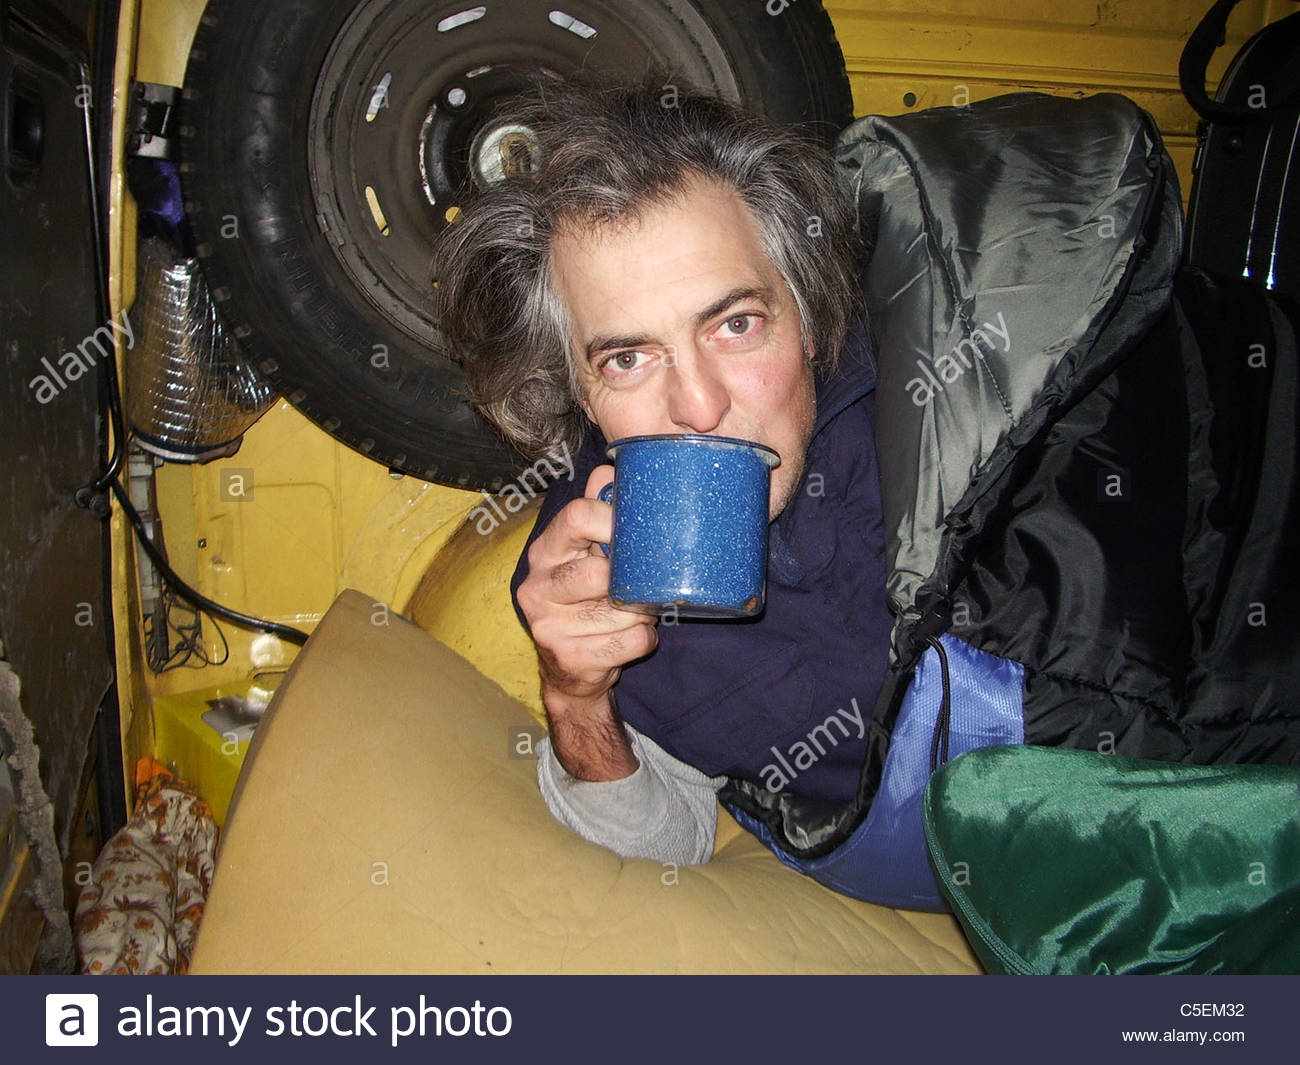 Camping equipment used by explorer Kypros in Africa - mug of tea inside a vehicle while wearing two sleeping bags Stock Photo